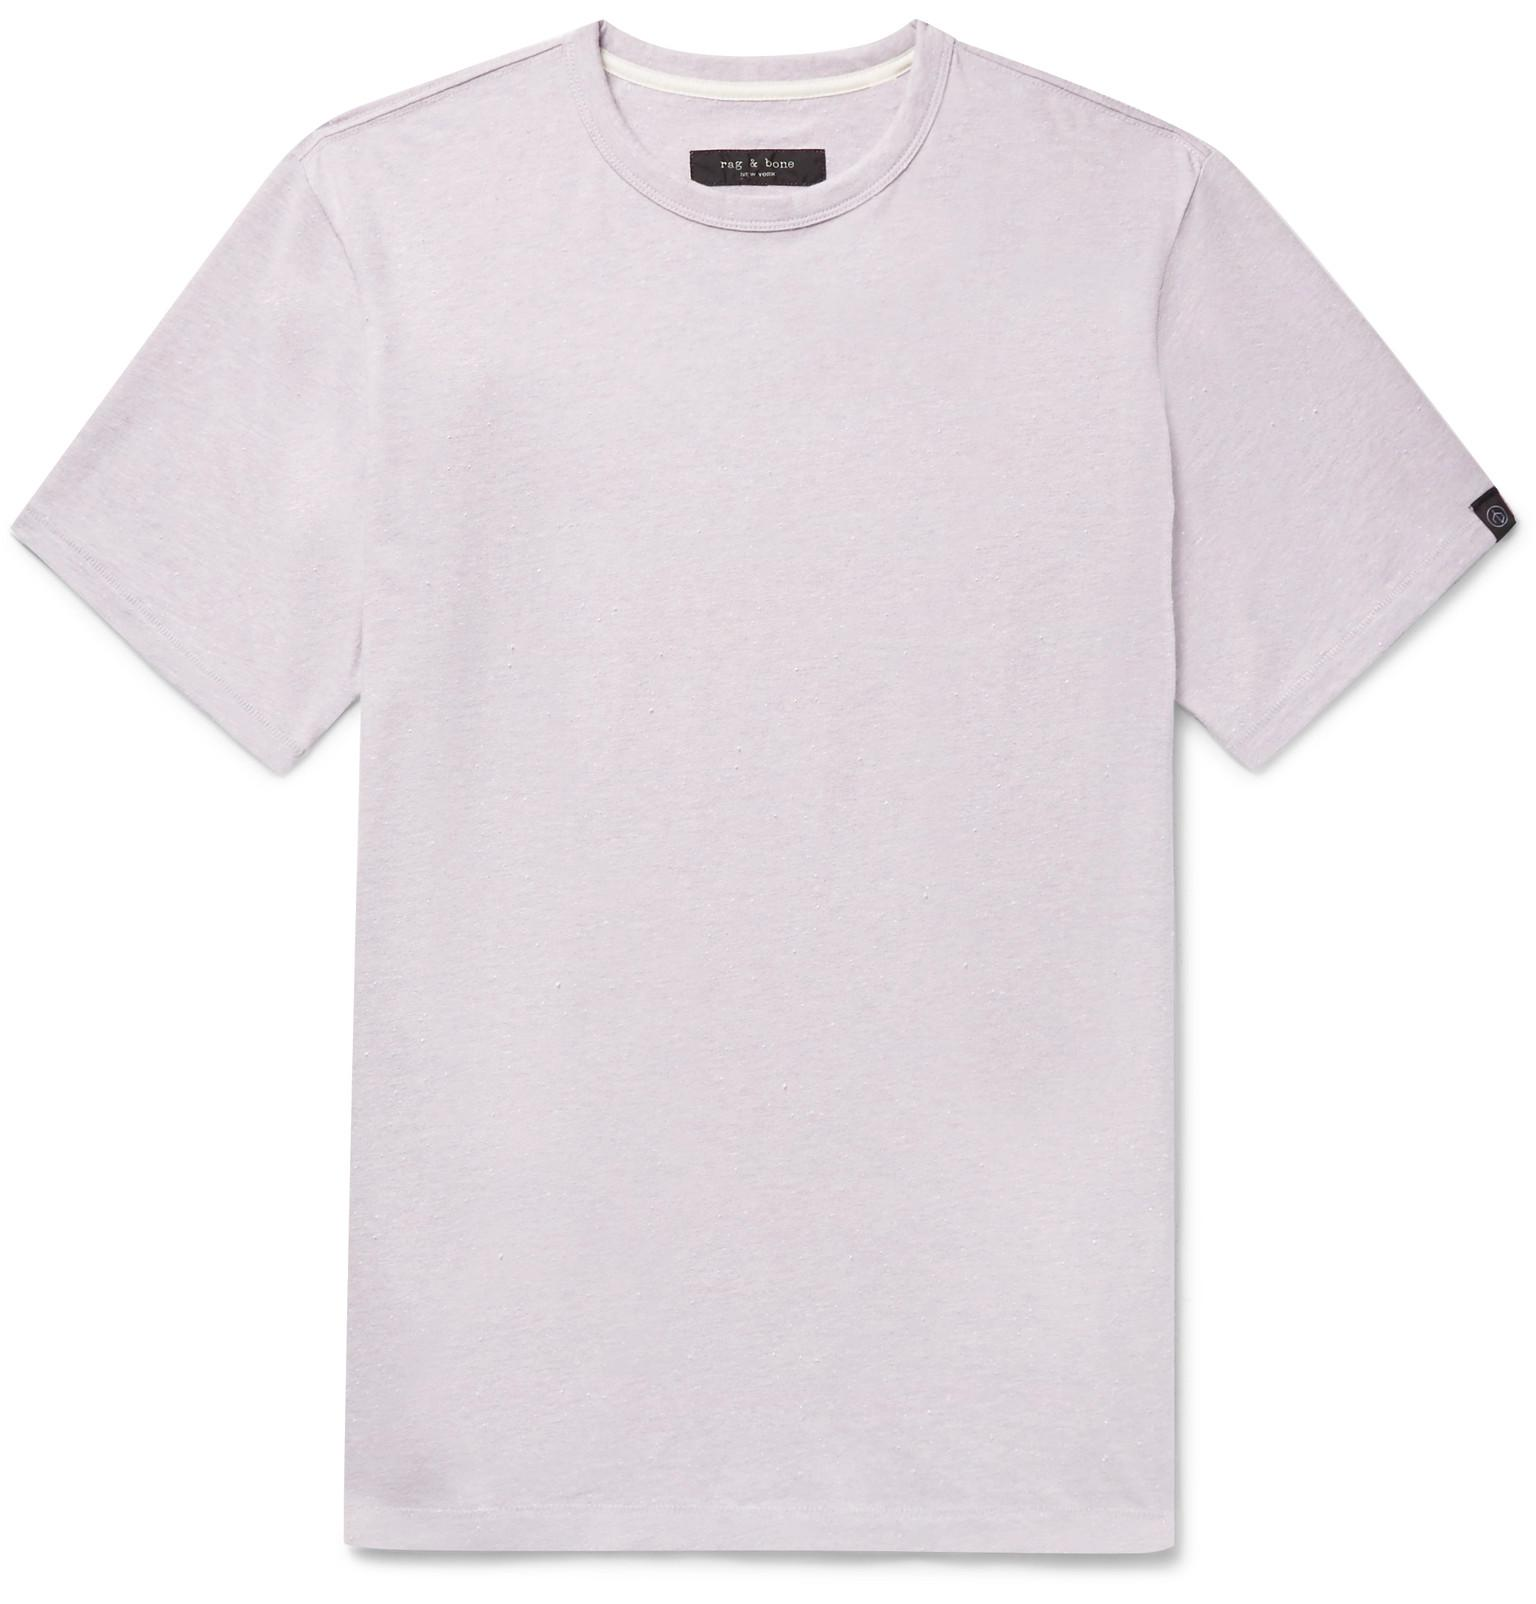 James Slim-fit Nep Cotton-jersey T-shirt - Lilac Rag & Bone Outlet Footlocker Pictures Sale For Cheap Visit New Clearance Really Cheap Sale Footlocker j2AOp0ZkA